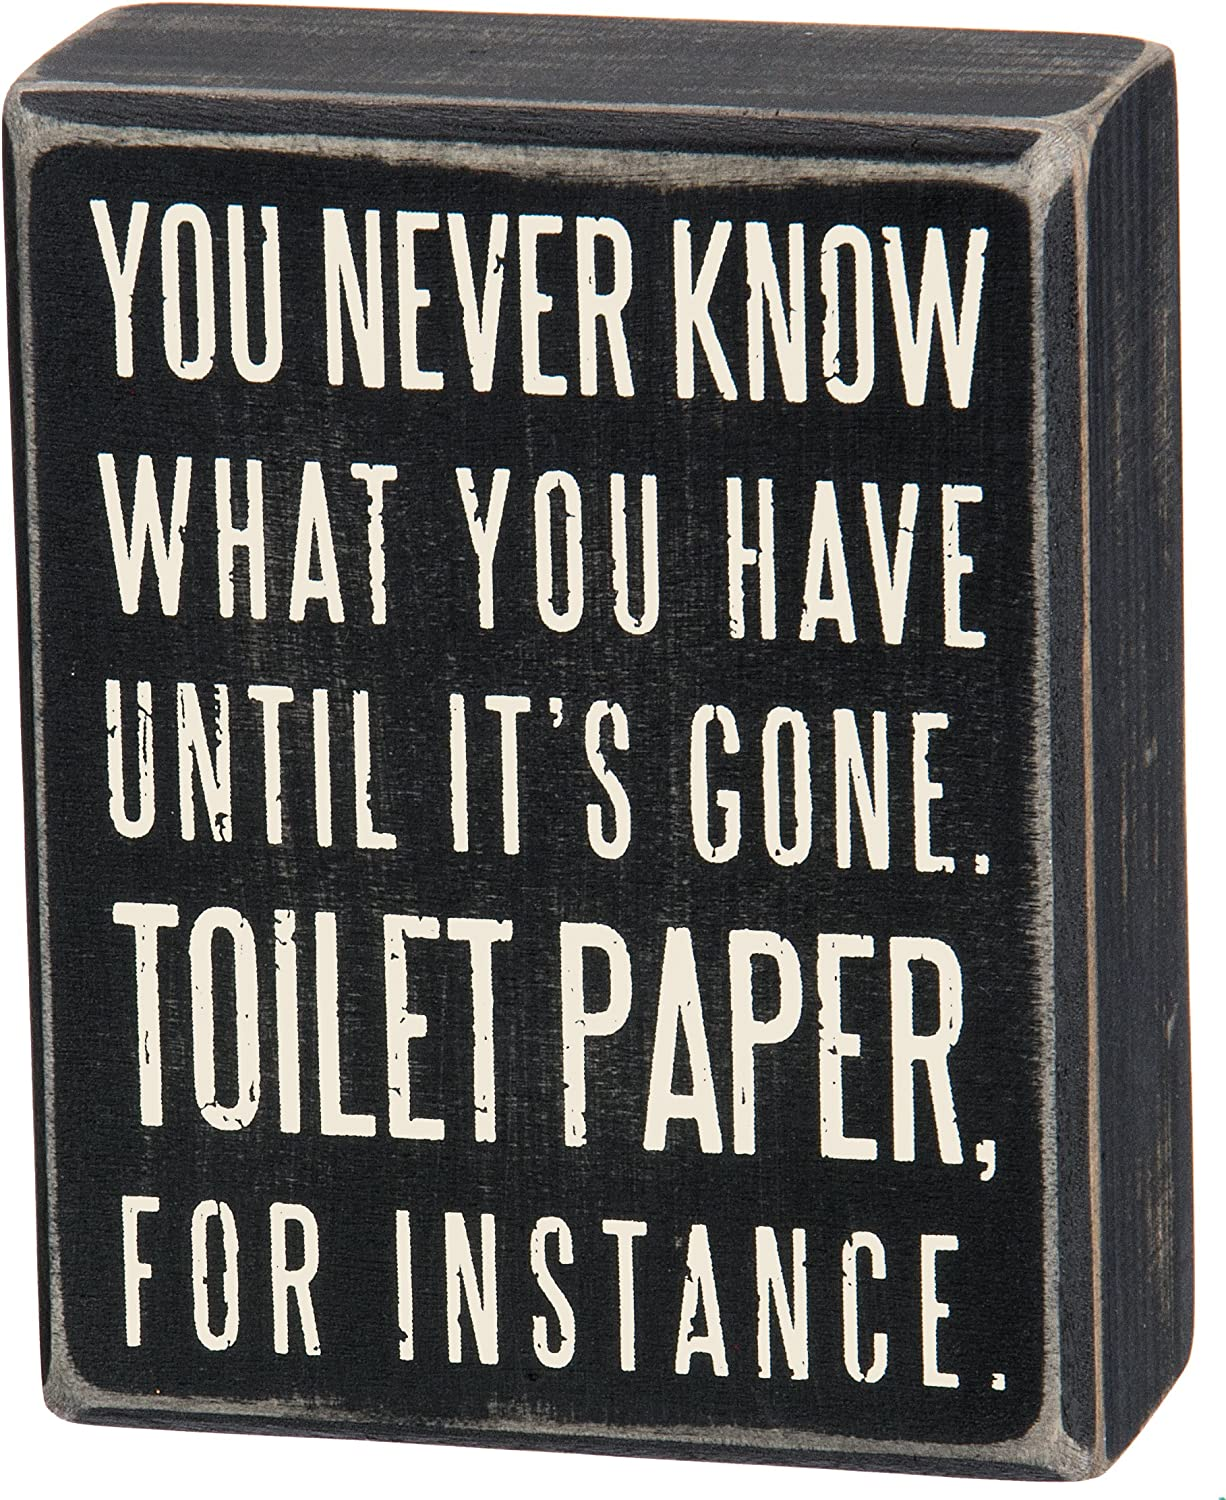 Primitives by Kathy 25465 Classic Box Sign, 4 x 5-Inches, You Never Know What You Have Until It's Gone